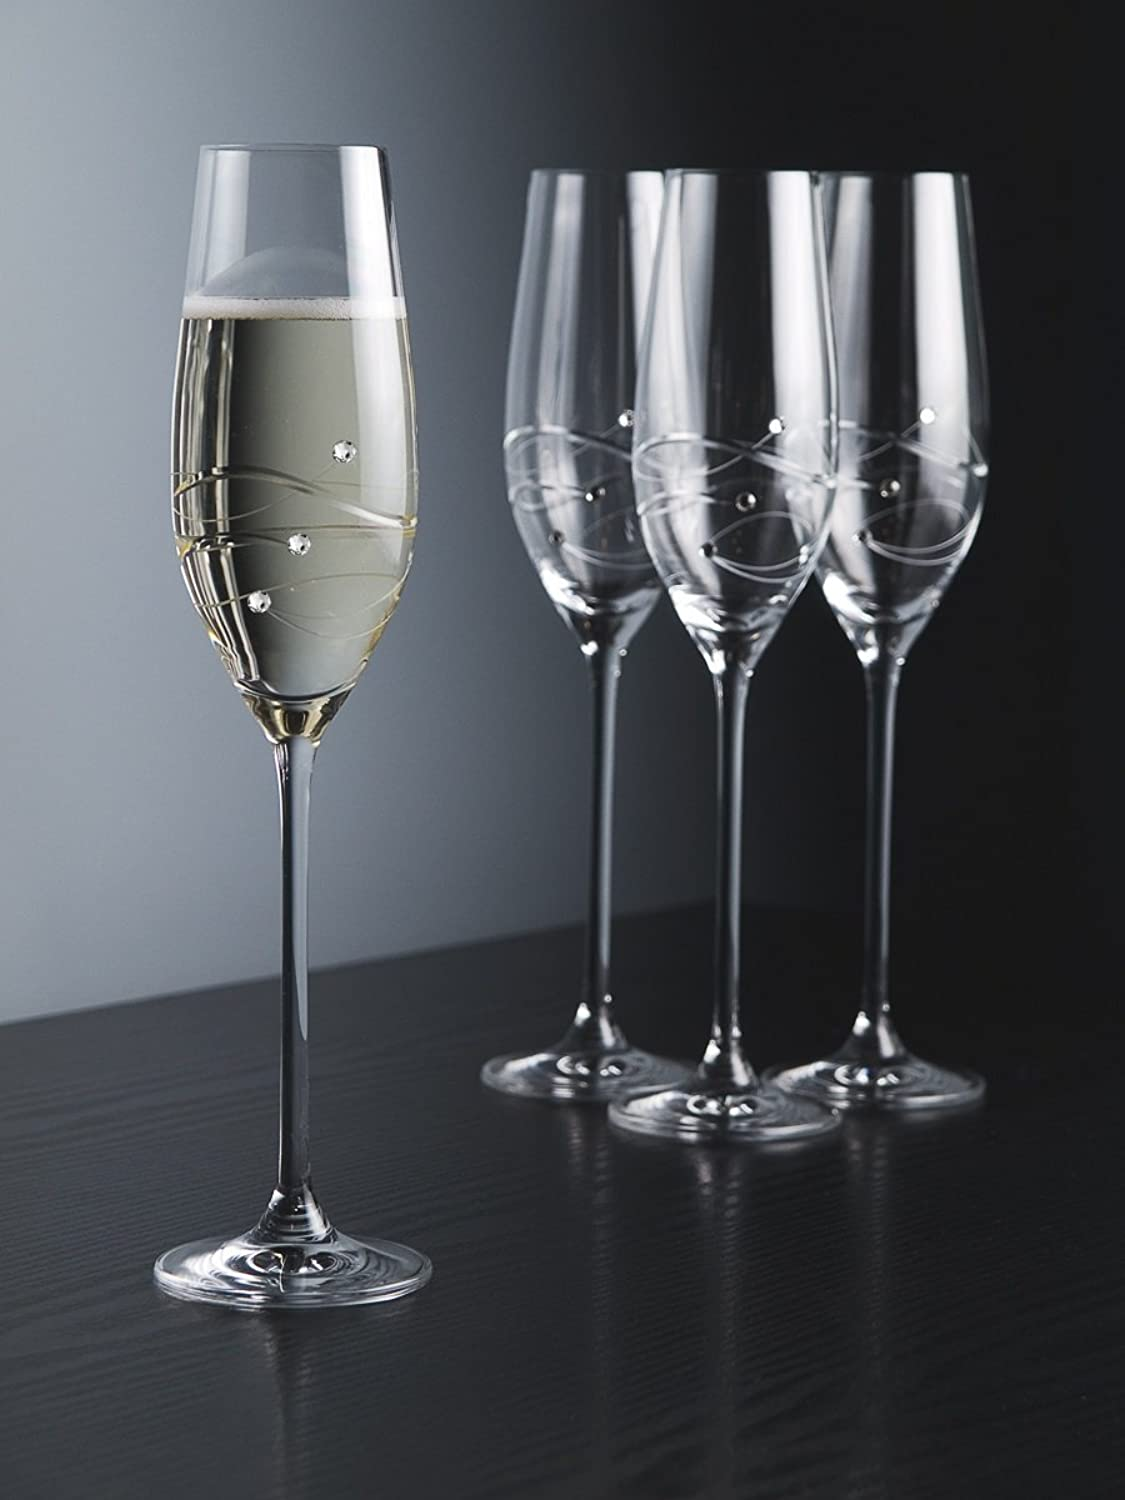 Barski - Handmade Glass - Sparkle - Champagne Flute Glass - Decorated with Real Swarovski Diamonds - Gift Boxed - 7 oz. - Made in Europe - Set of 4